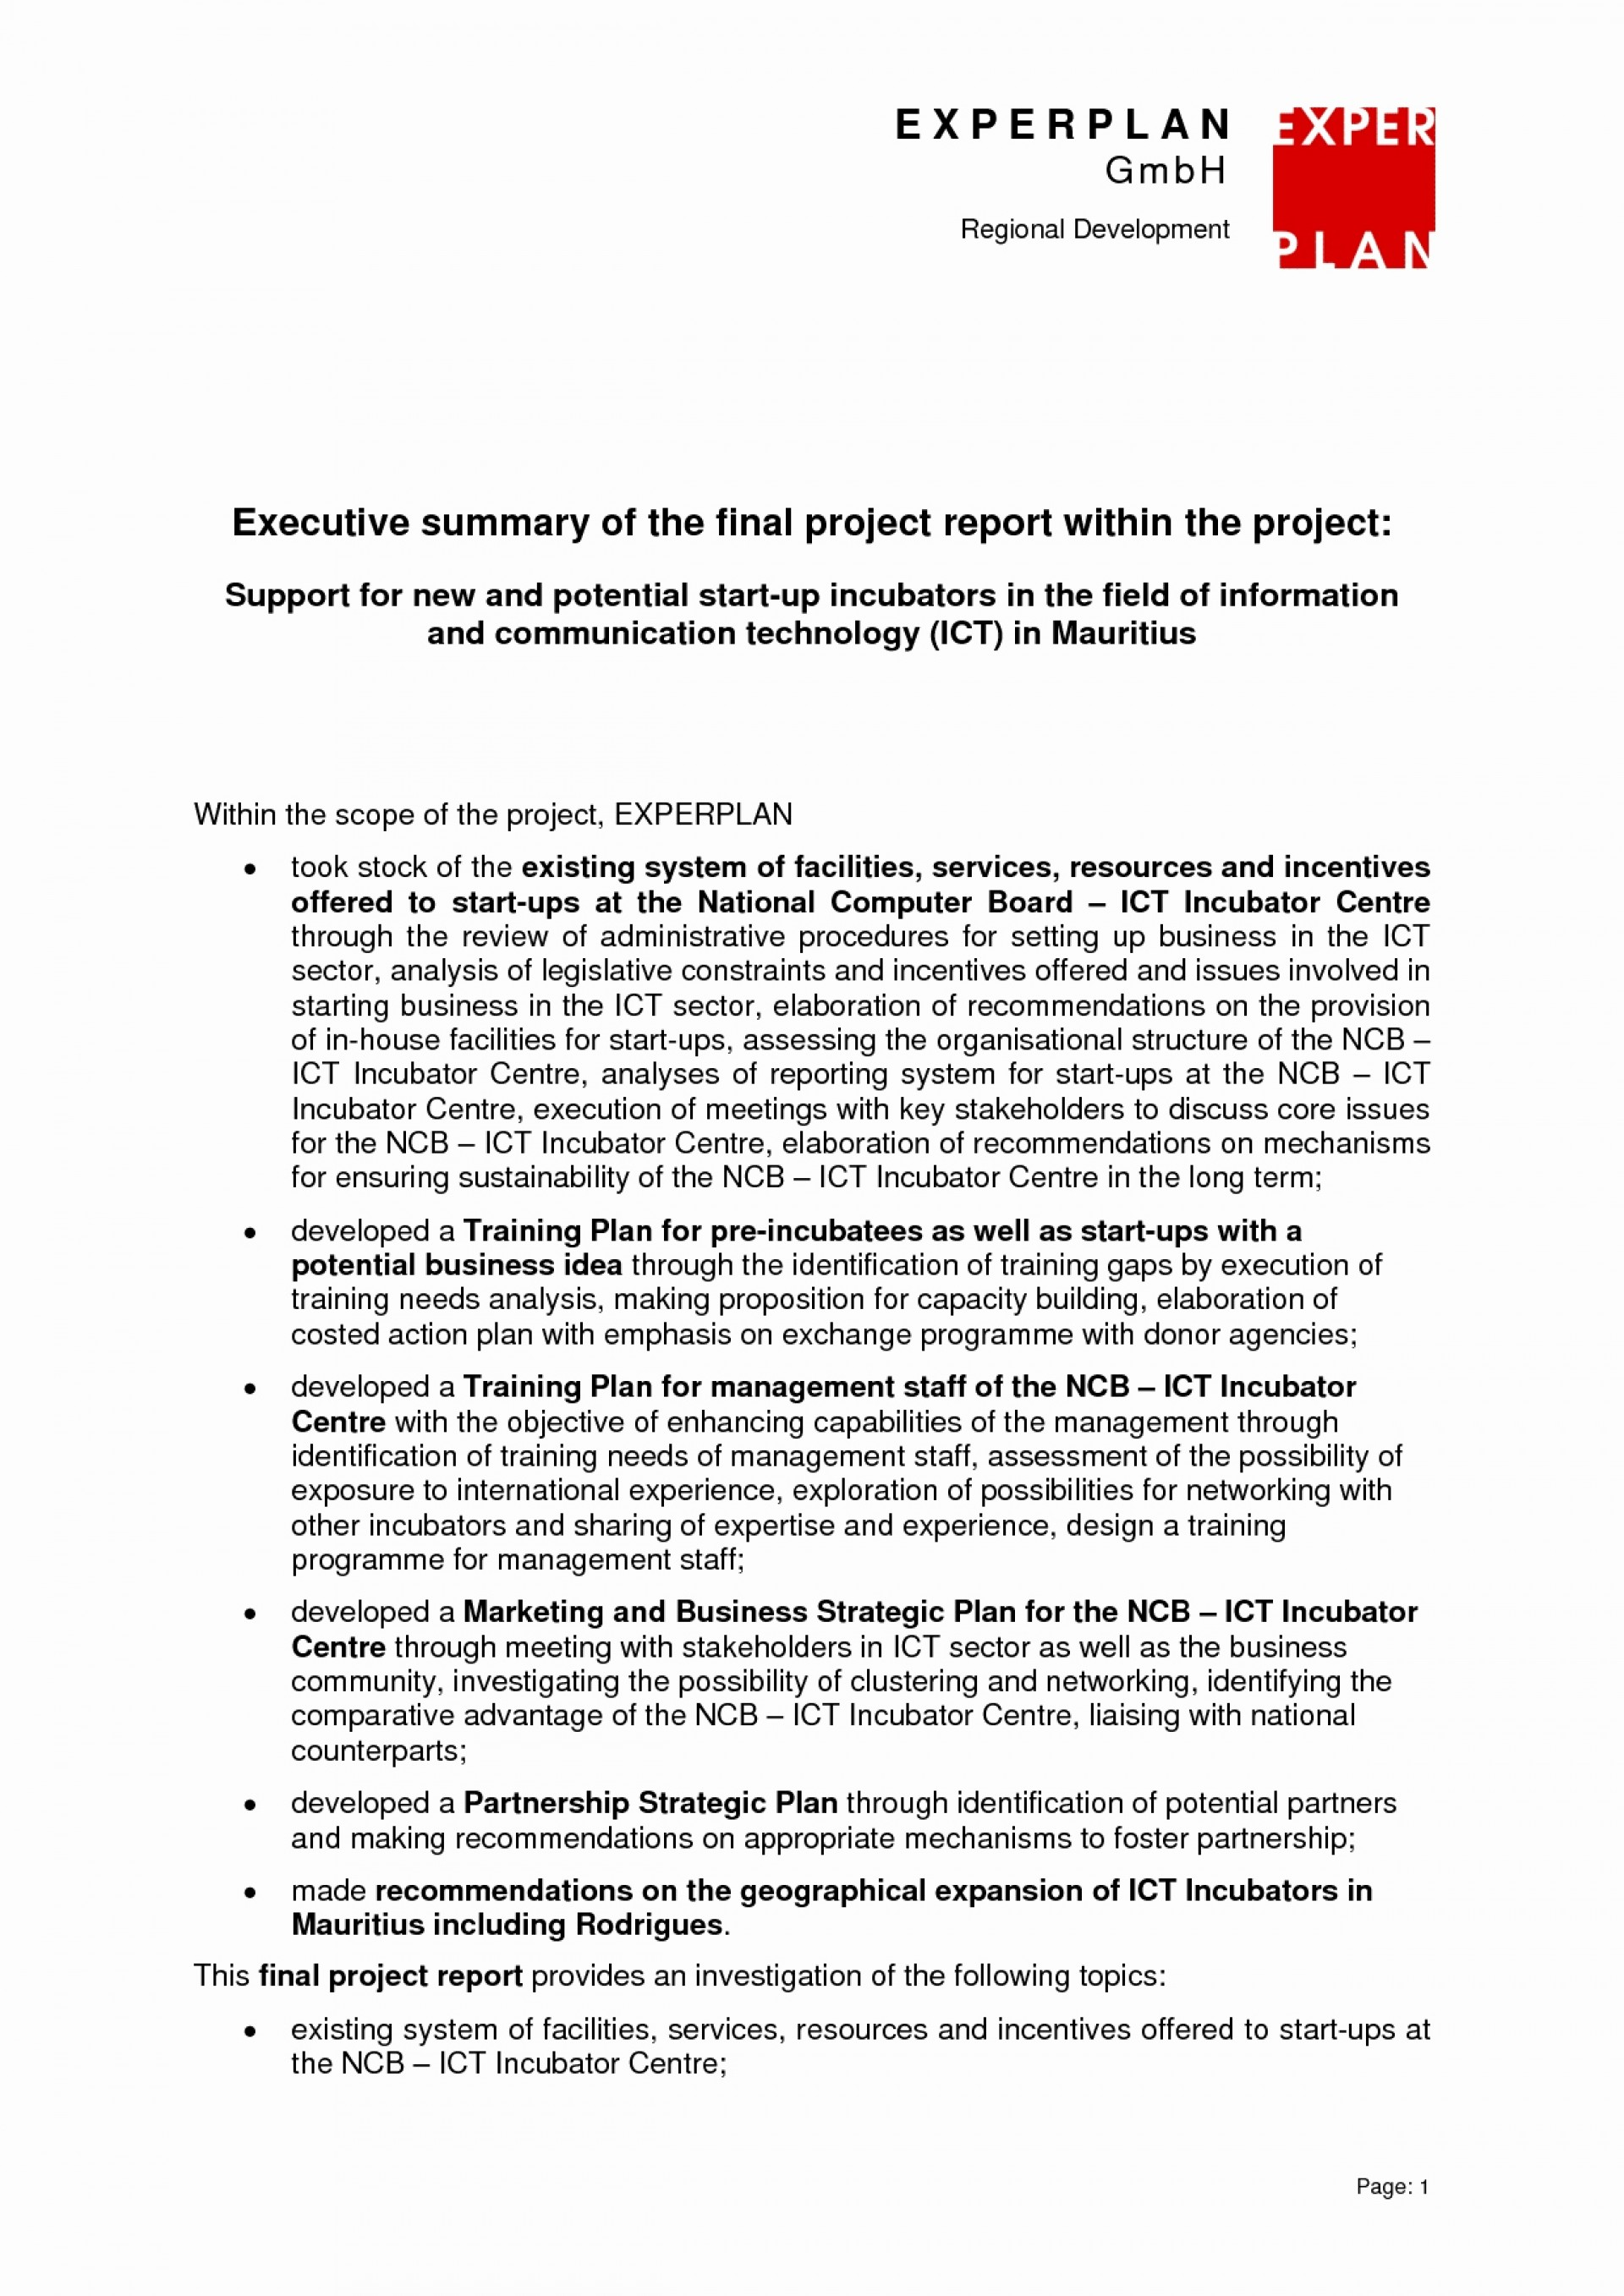 014 Executive Summary Research Paper Example 20project Management Template Plan Luxury Experience Unforgettable 1920